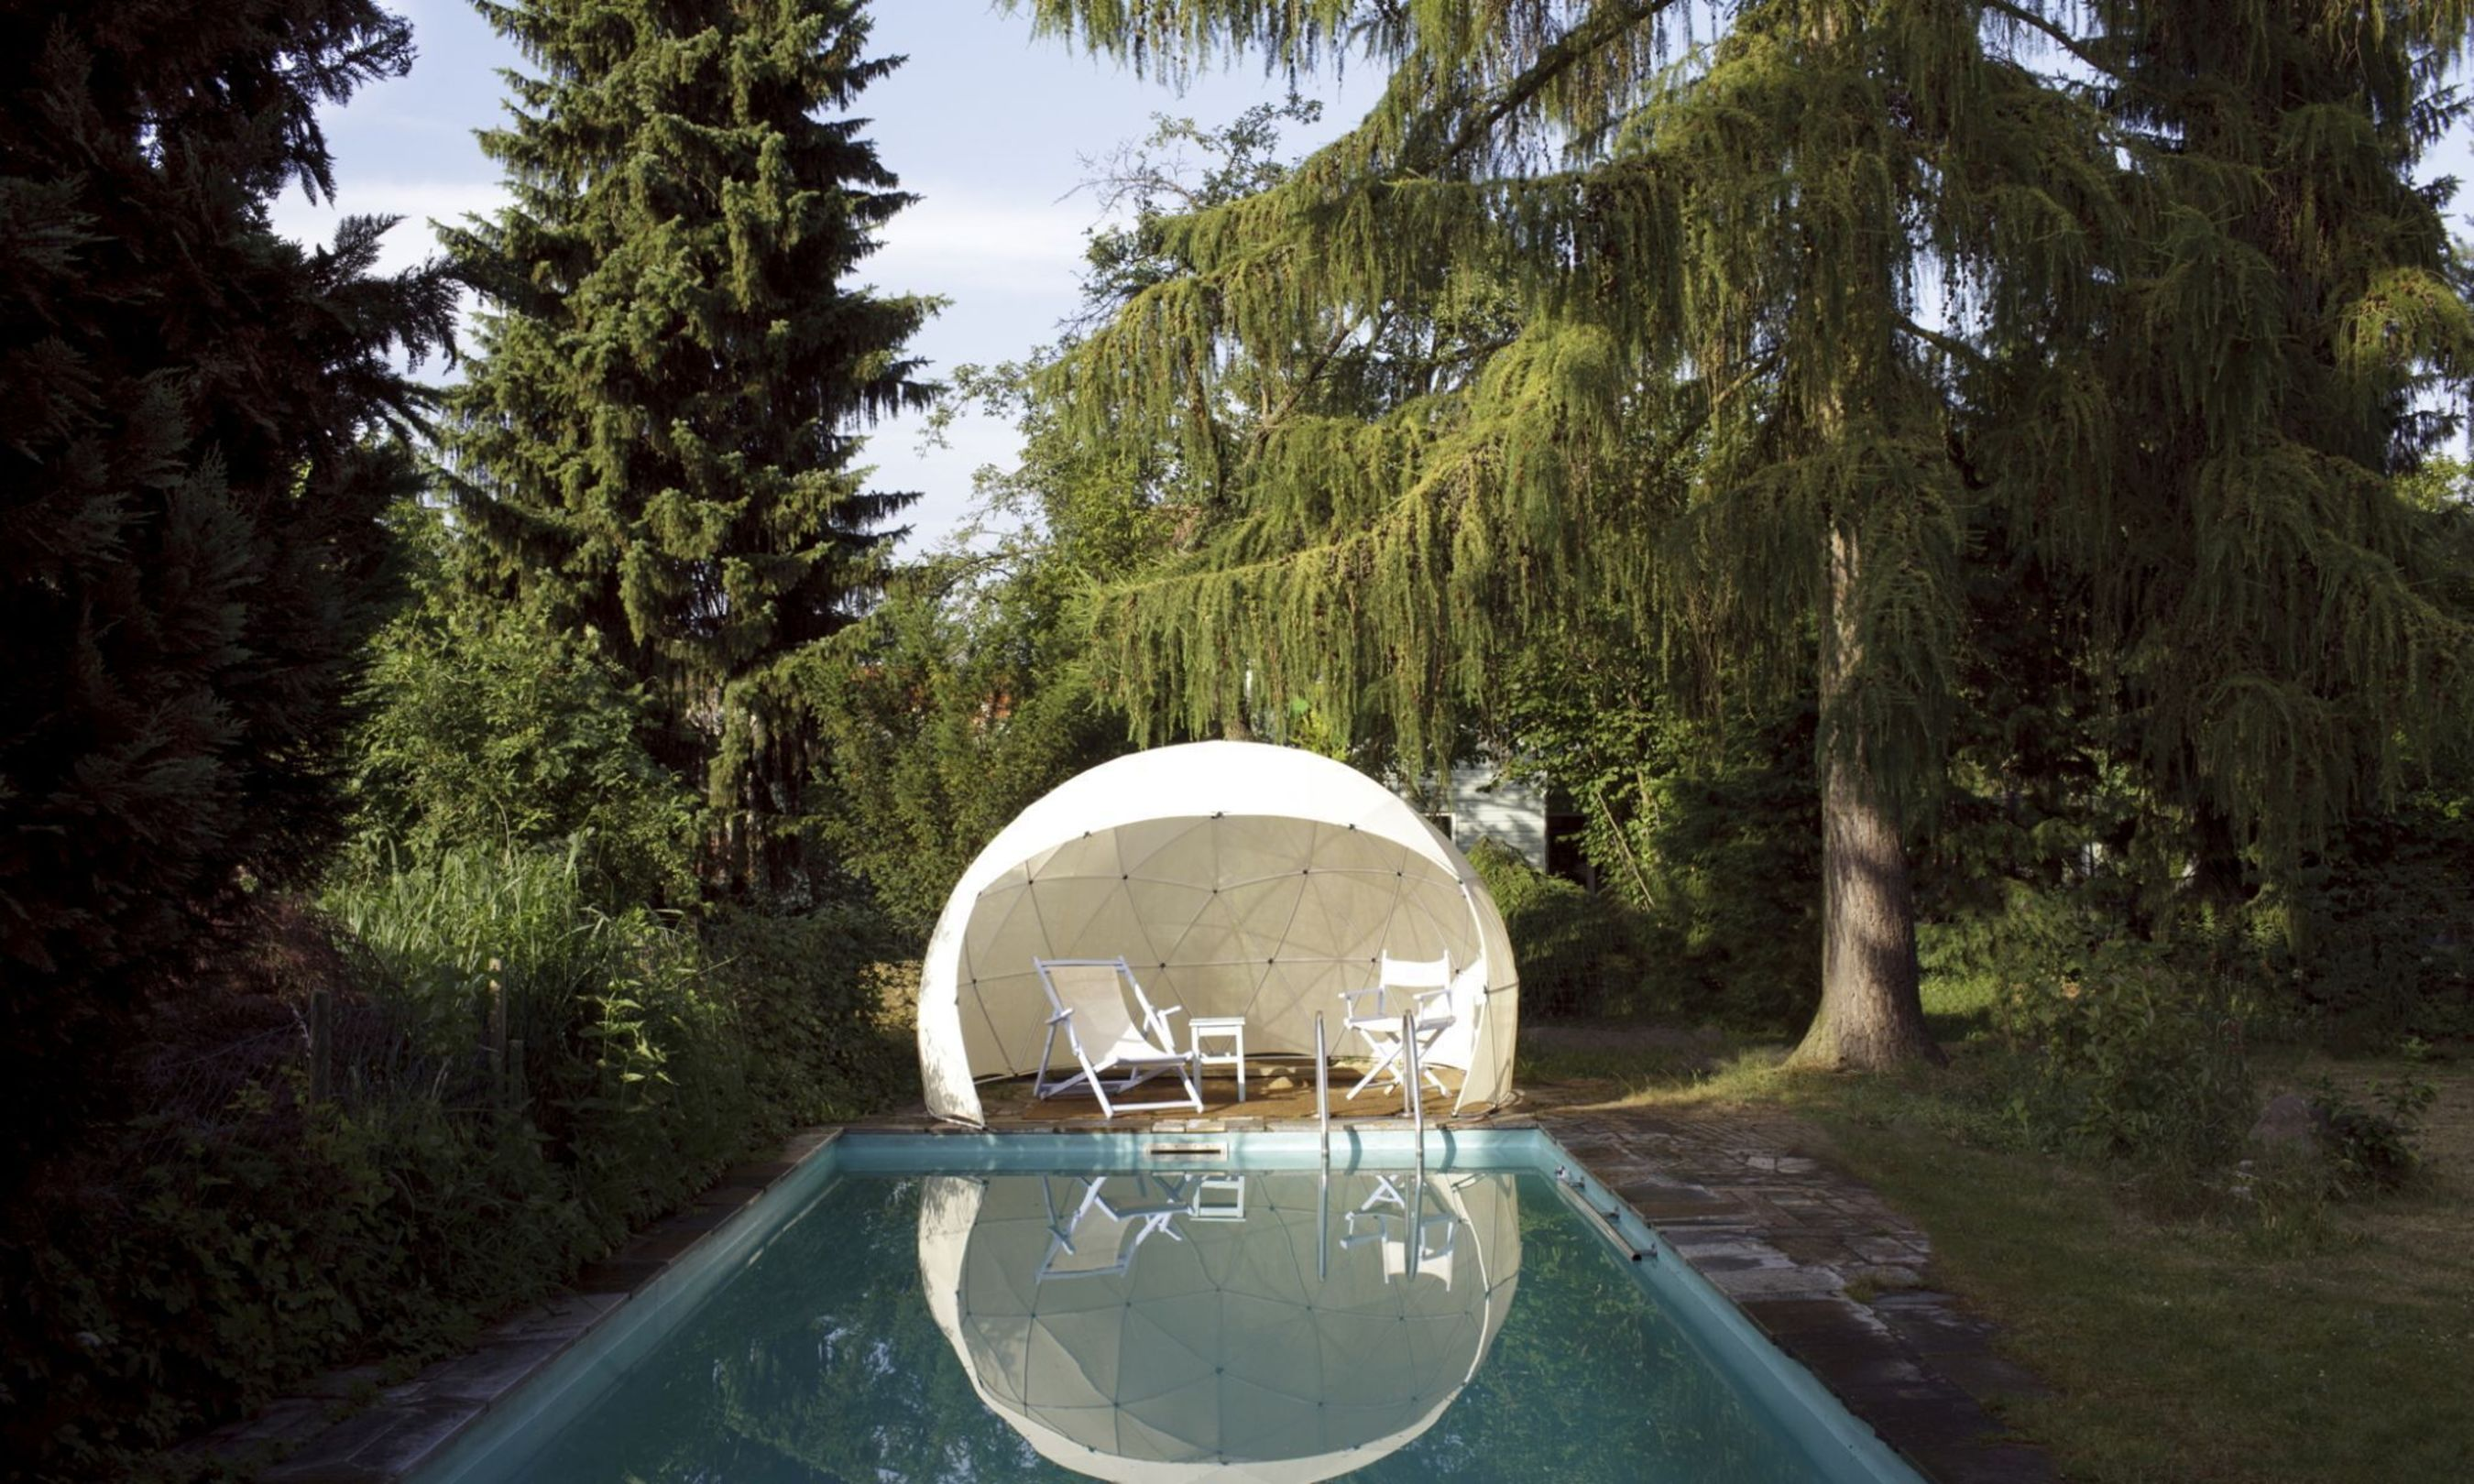 The Canopy Cover by the pool. Editorial use of this picture is free of charge. Please quote the source: obs/Gardenigloo GmbH (PRNewsFoto/Gardenigloo GmbH)